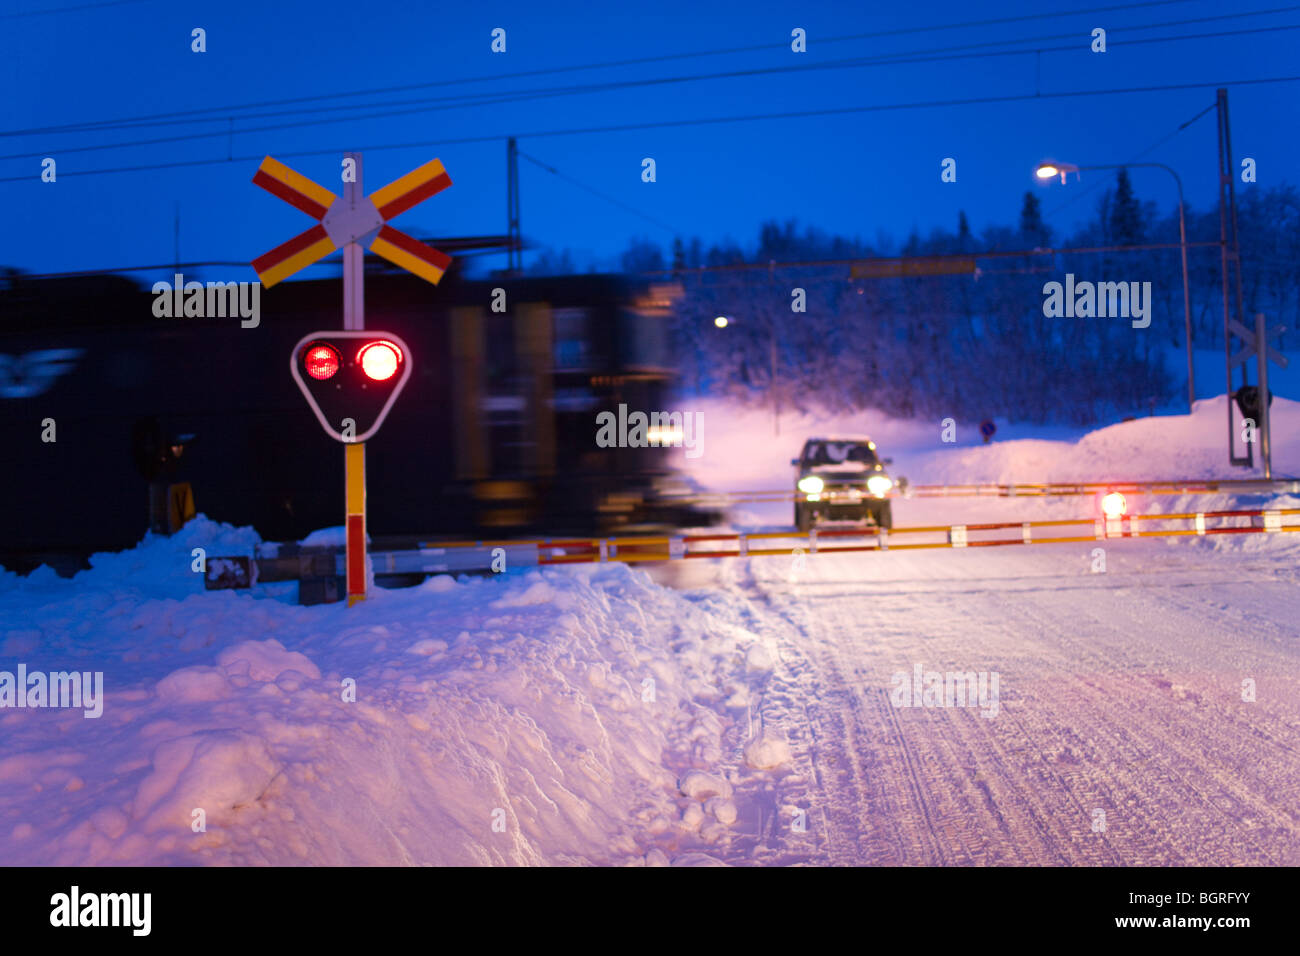 A train in motion at dusk, Sweden. - Stock Image